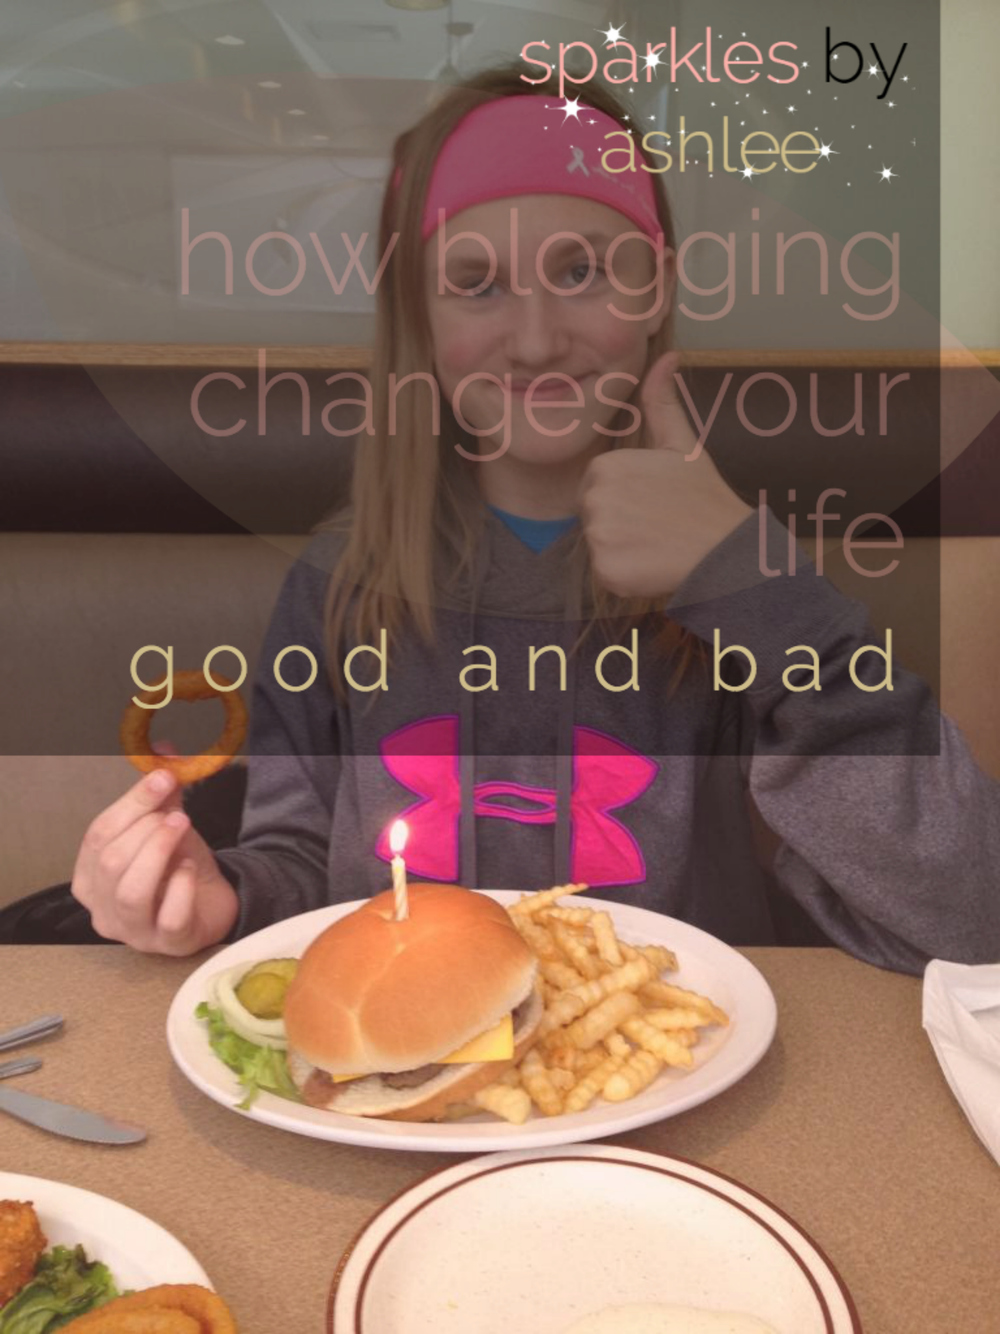 How-Blogging-Changes-Your-Life-Sparkles-by-Ashlee.jpg